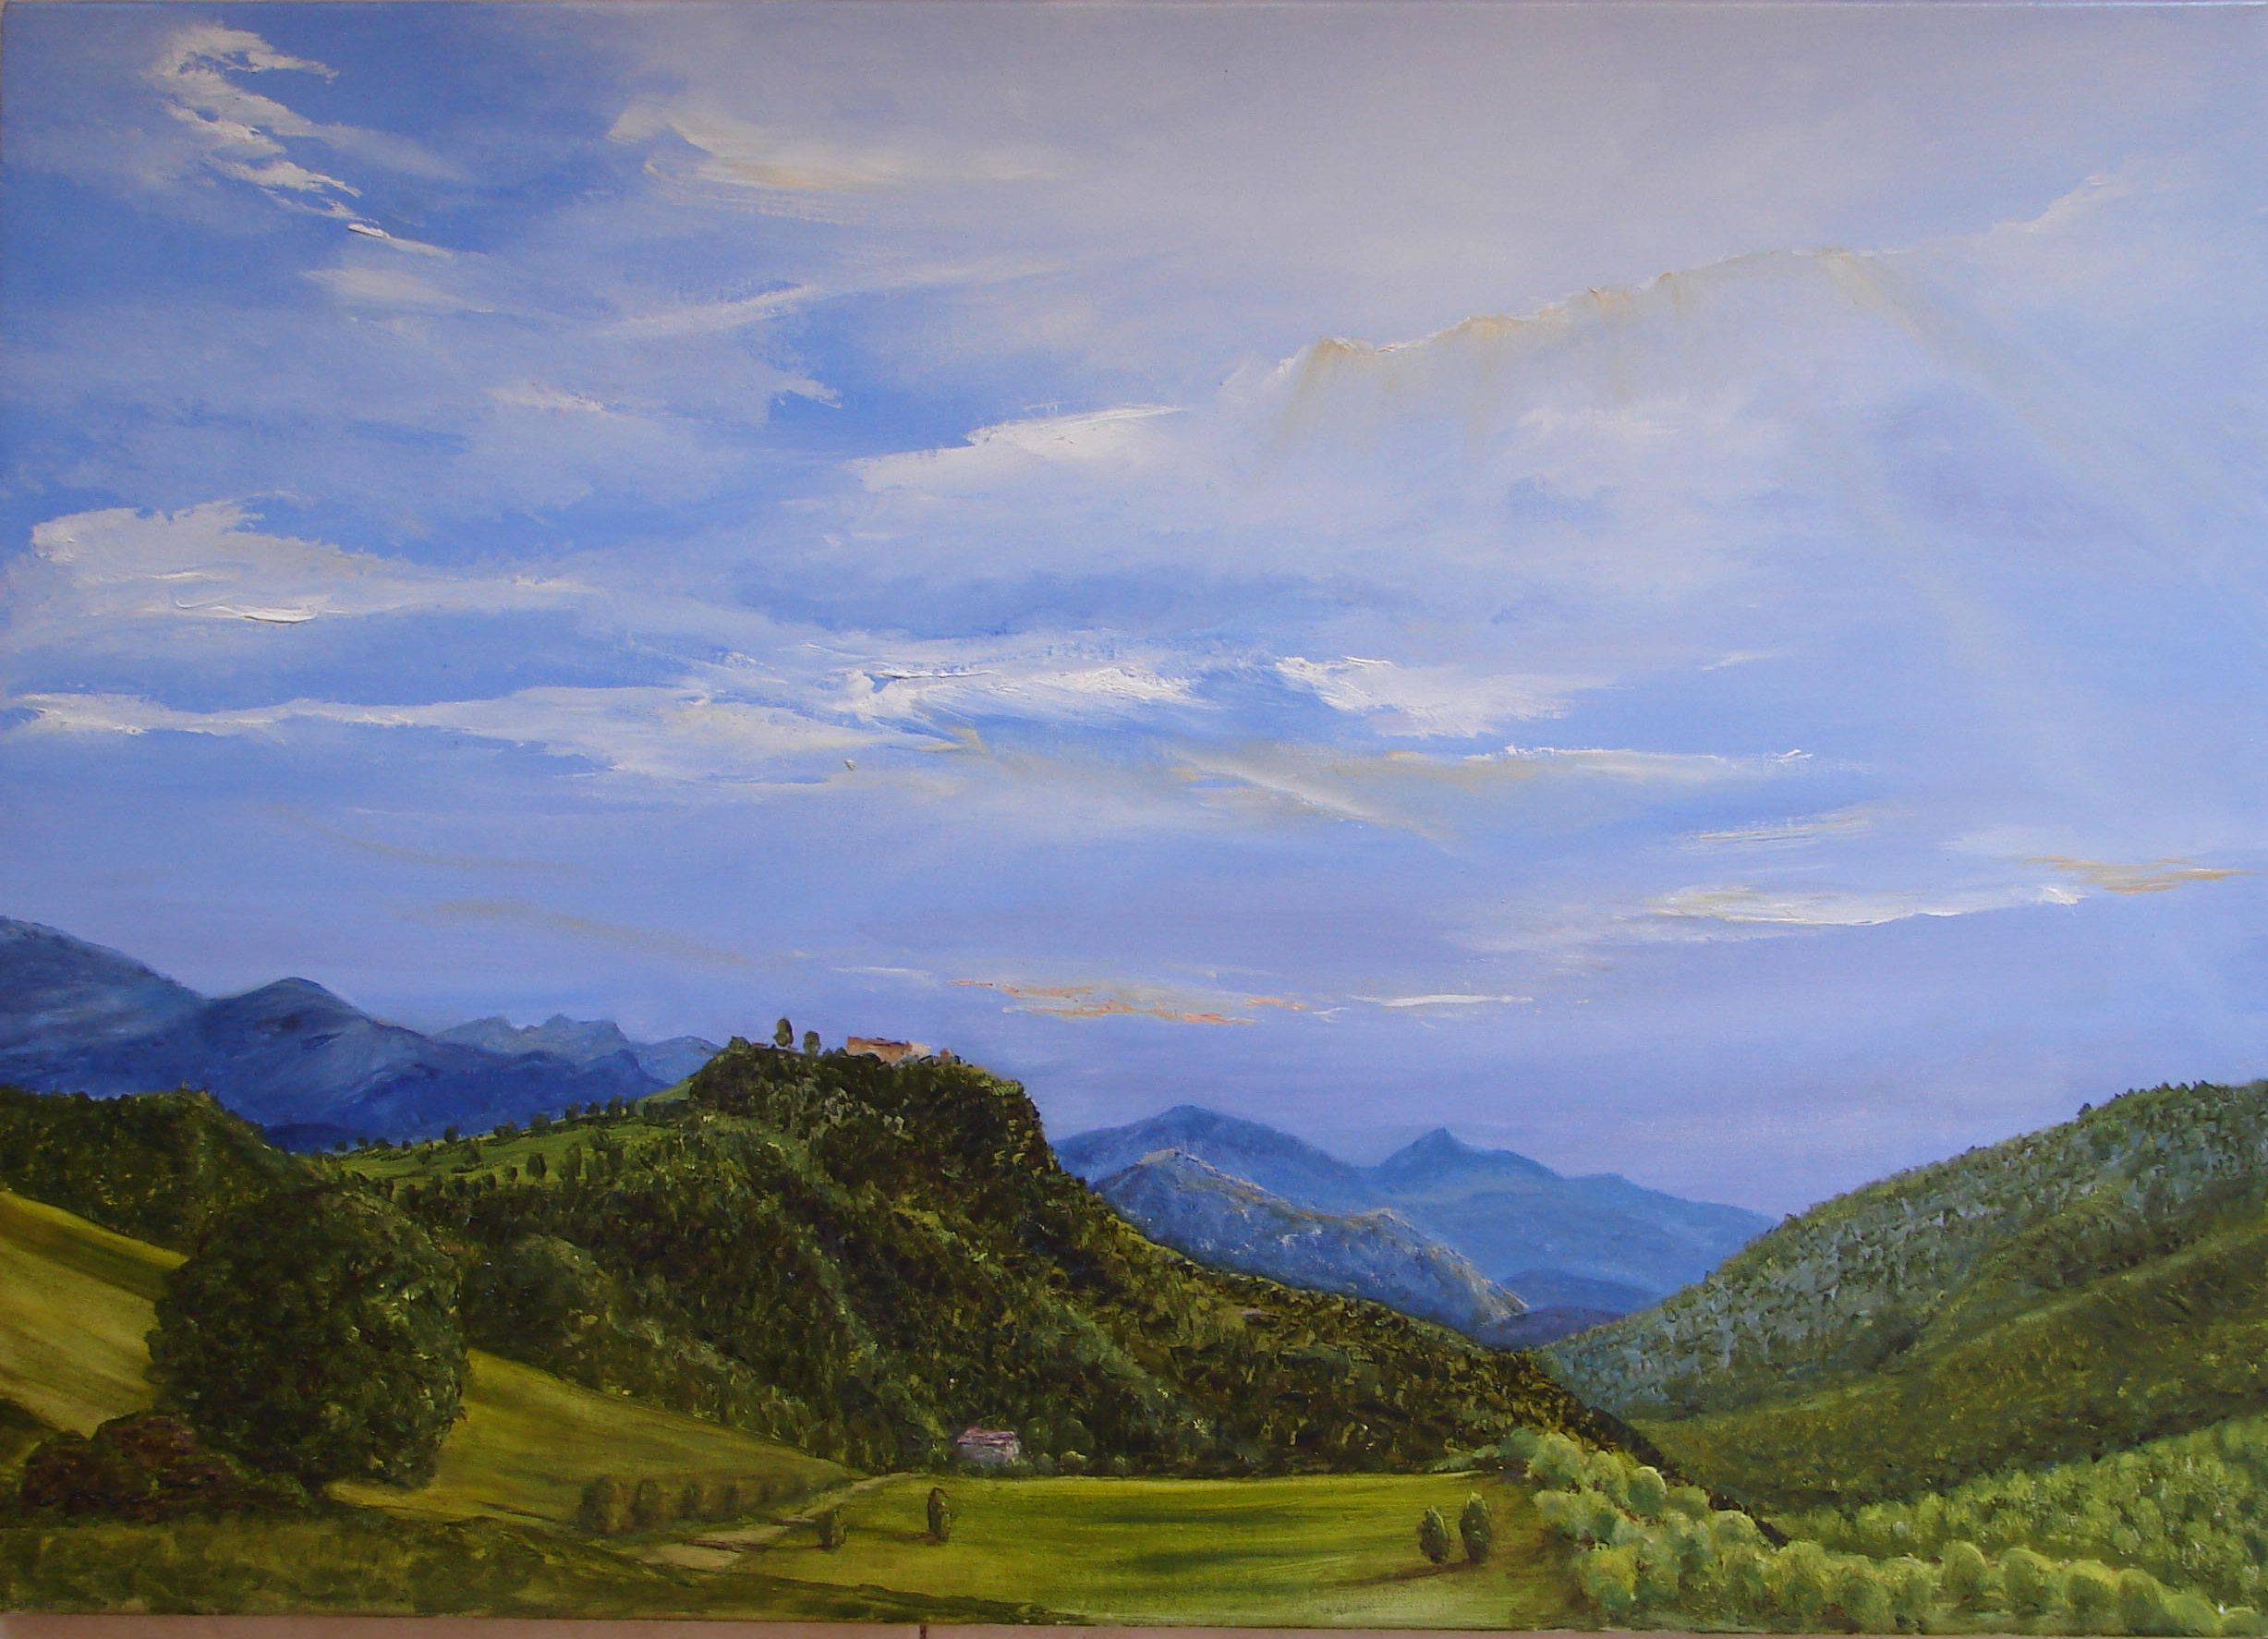 Original Oil Of High Mountains The Pyrenees Spain Landscape Painting Mountain Rural House Cultivated Land Painted On Belgian Fabric Pintura Al Oleo Paisajes Paisajes Pinturas